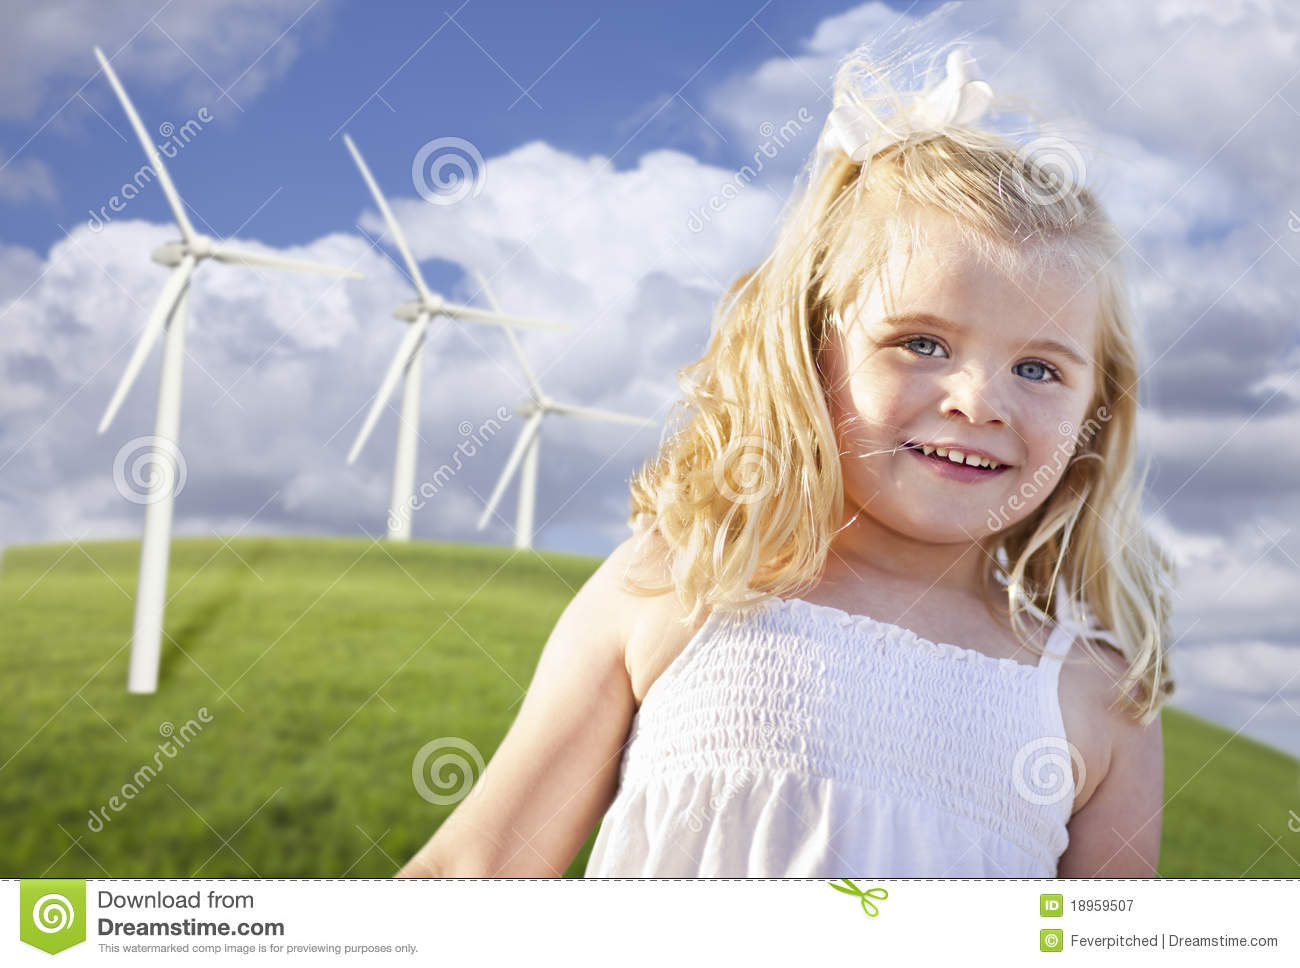 Download Beautiful Young Girl Playing In Wind Turbine Field Stock Image - Image of conservation, development: 18959507